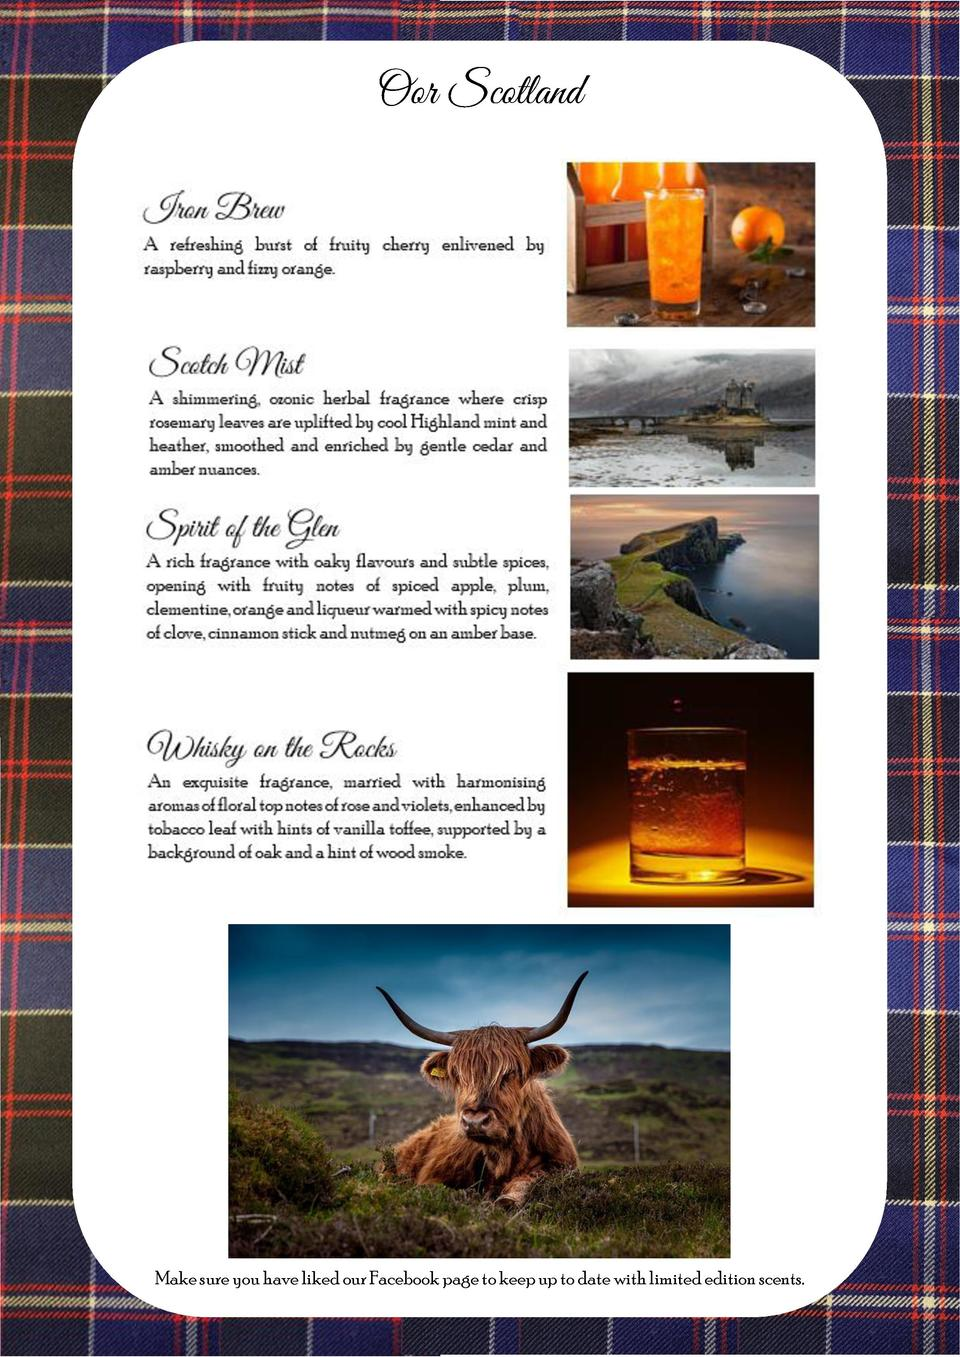 Oor Scotland  Make sure you have liked our Facebook page to keep up to date with limited edition scents.